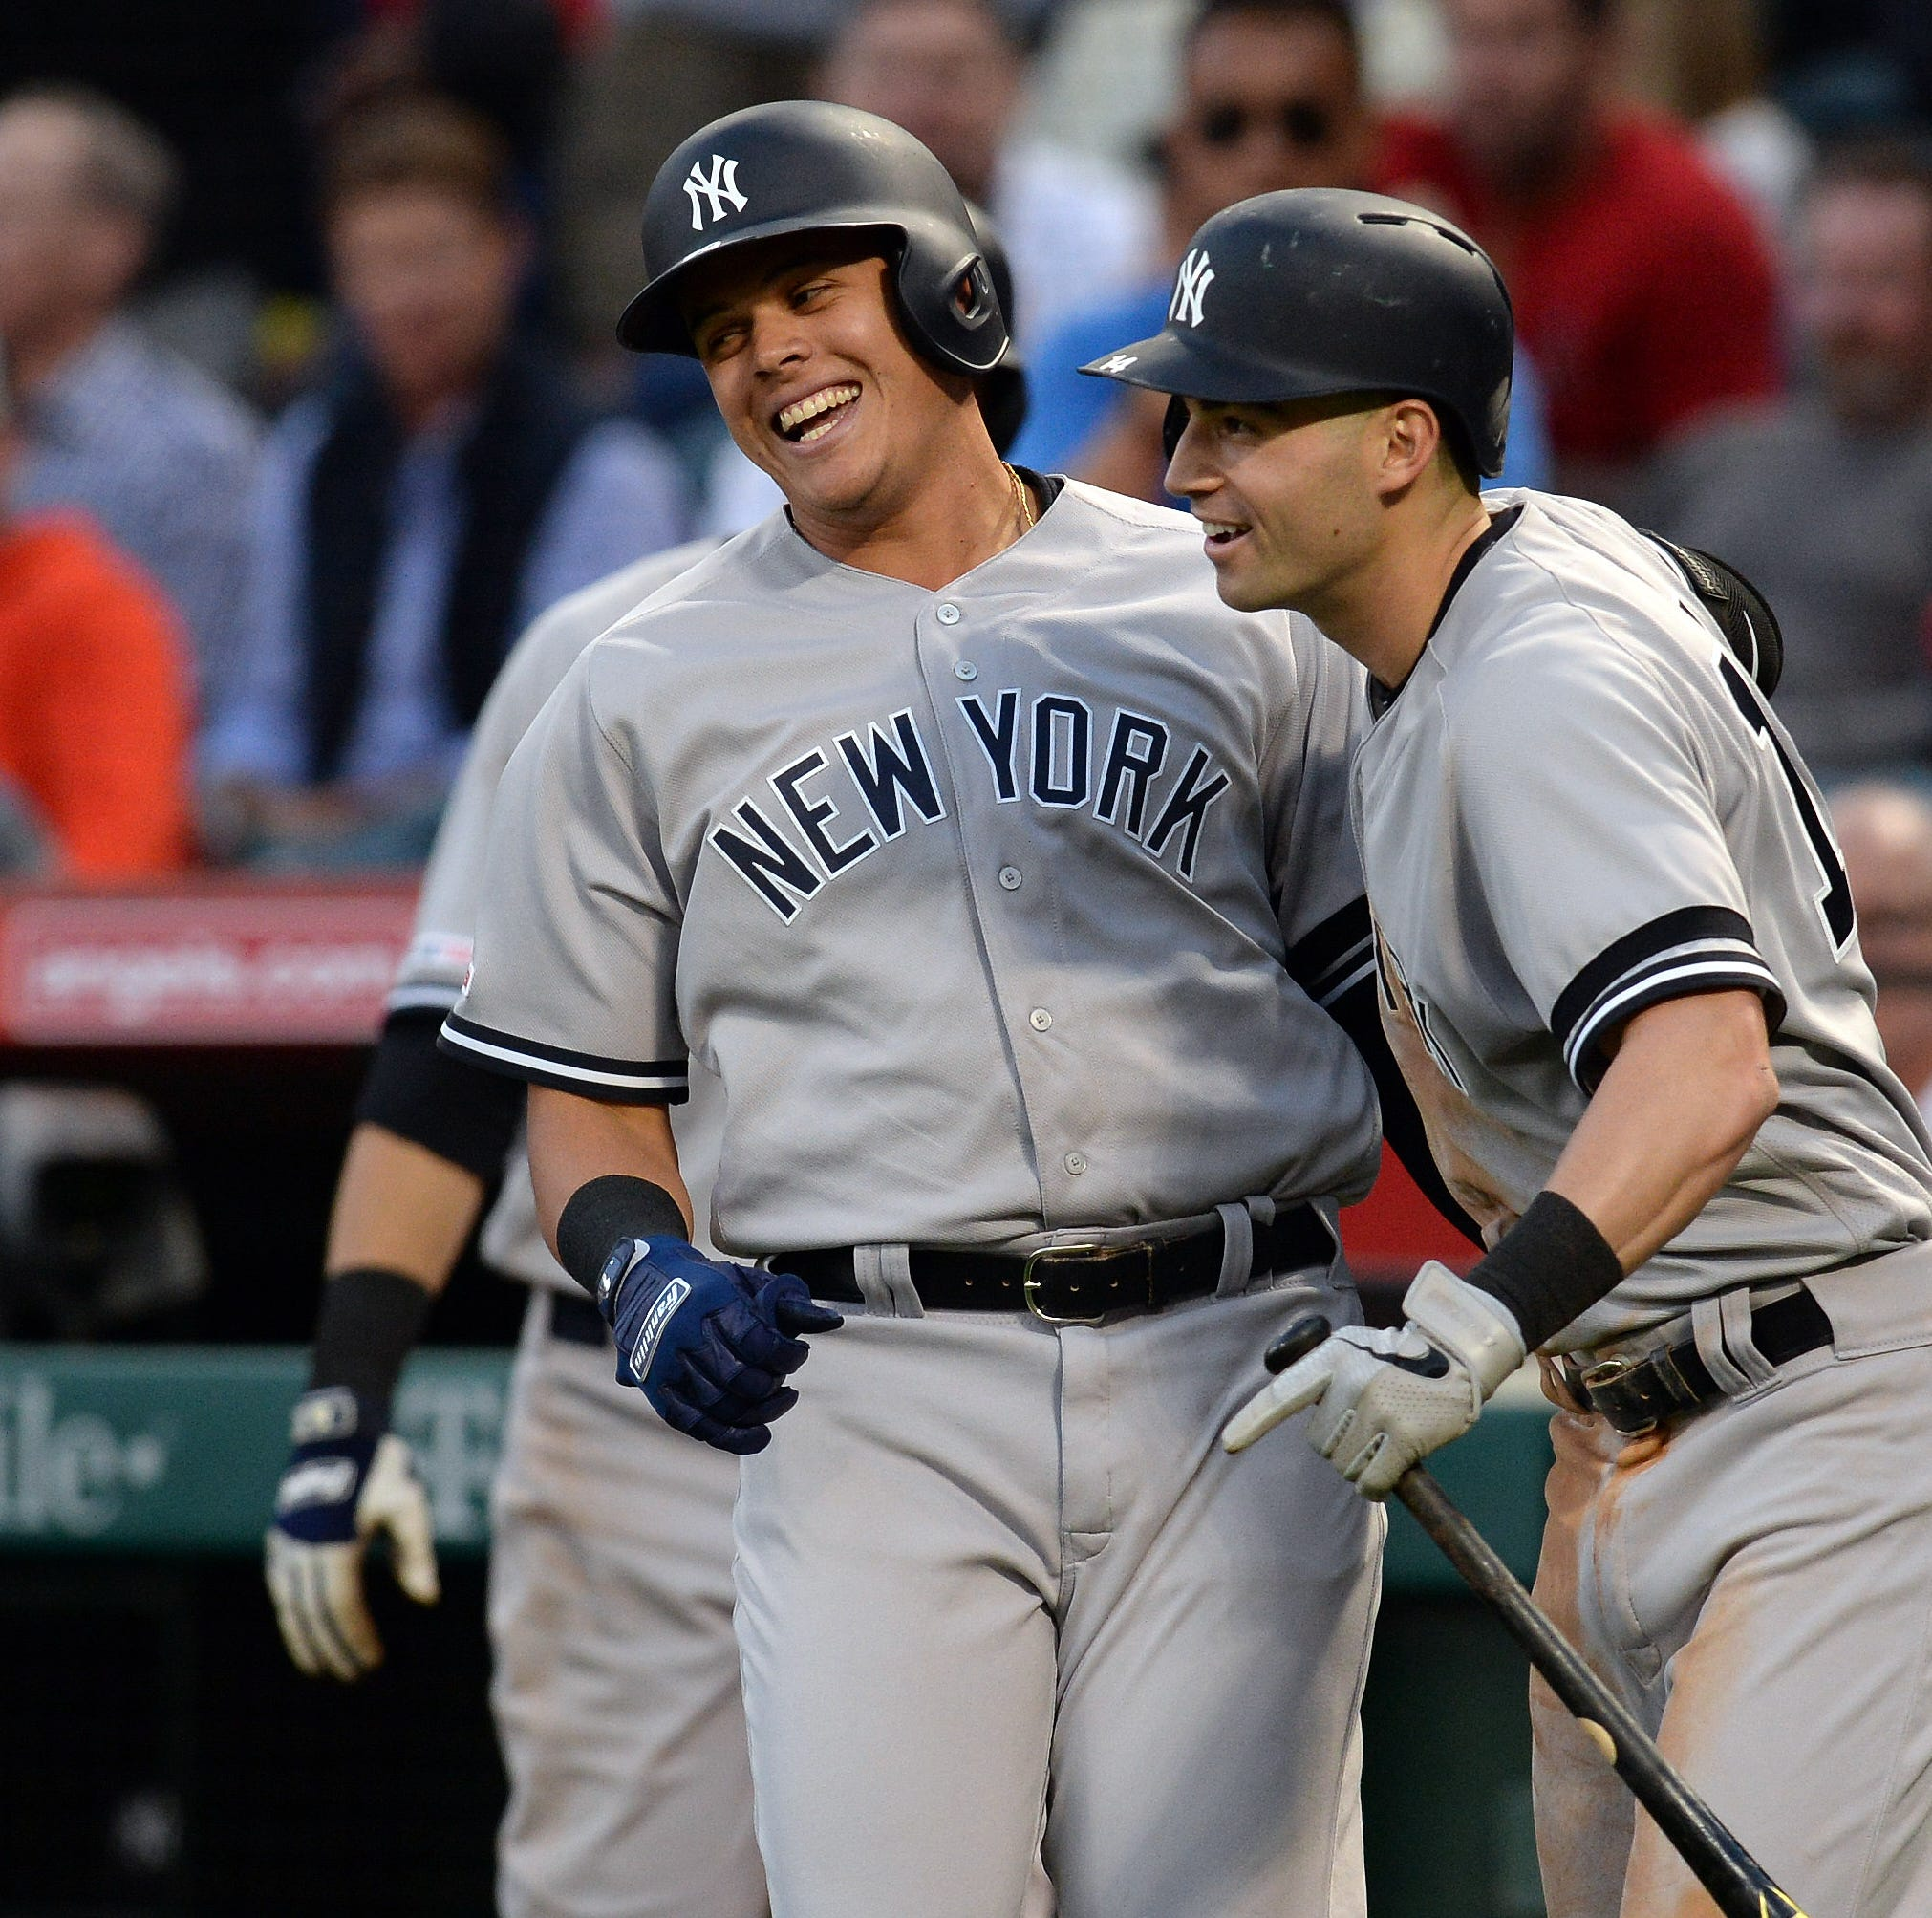 Gio Urshela continues to earn playing time despite Miguel Andujar's return to the Yankees